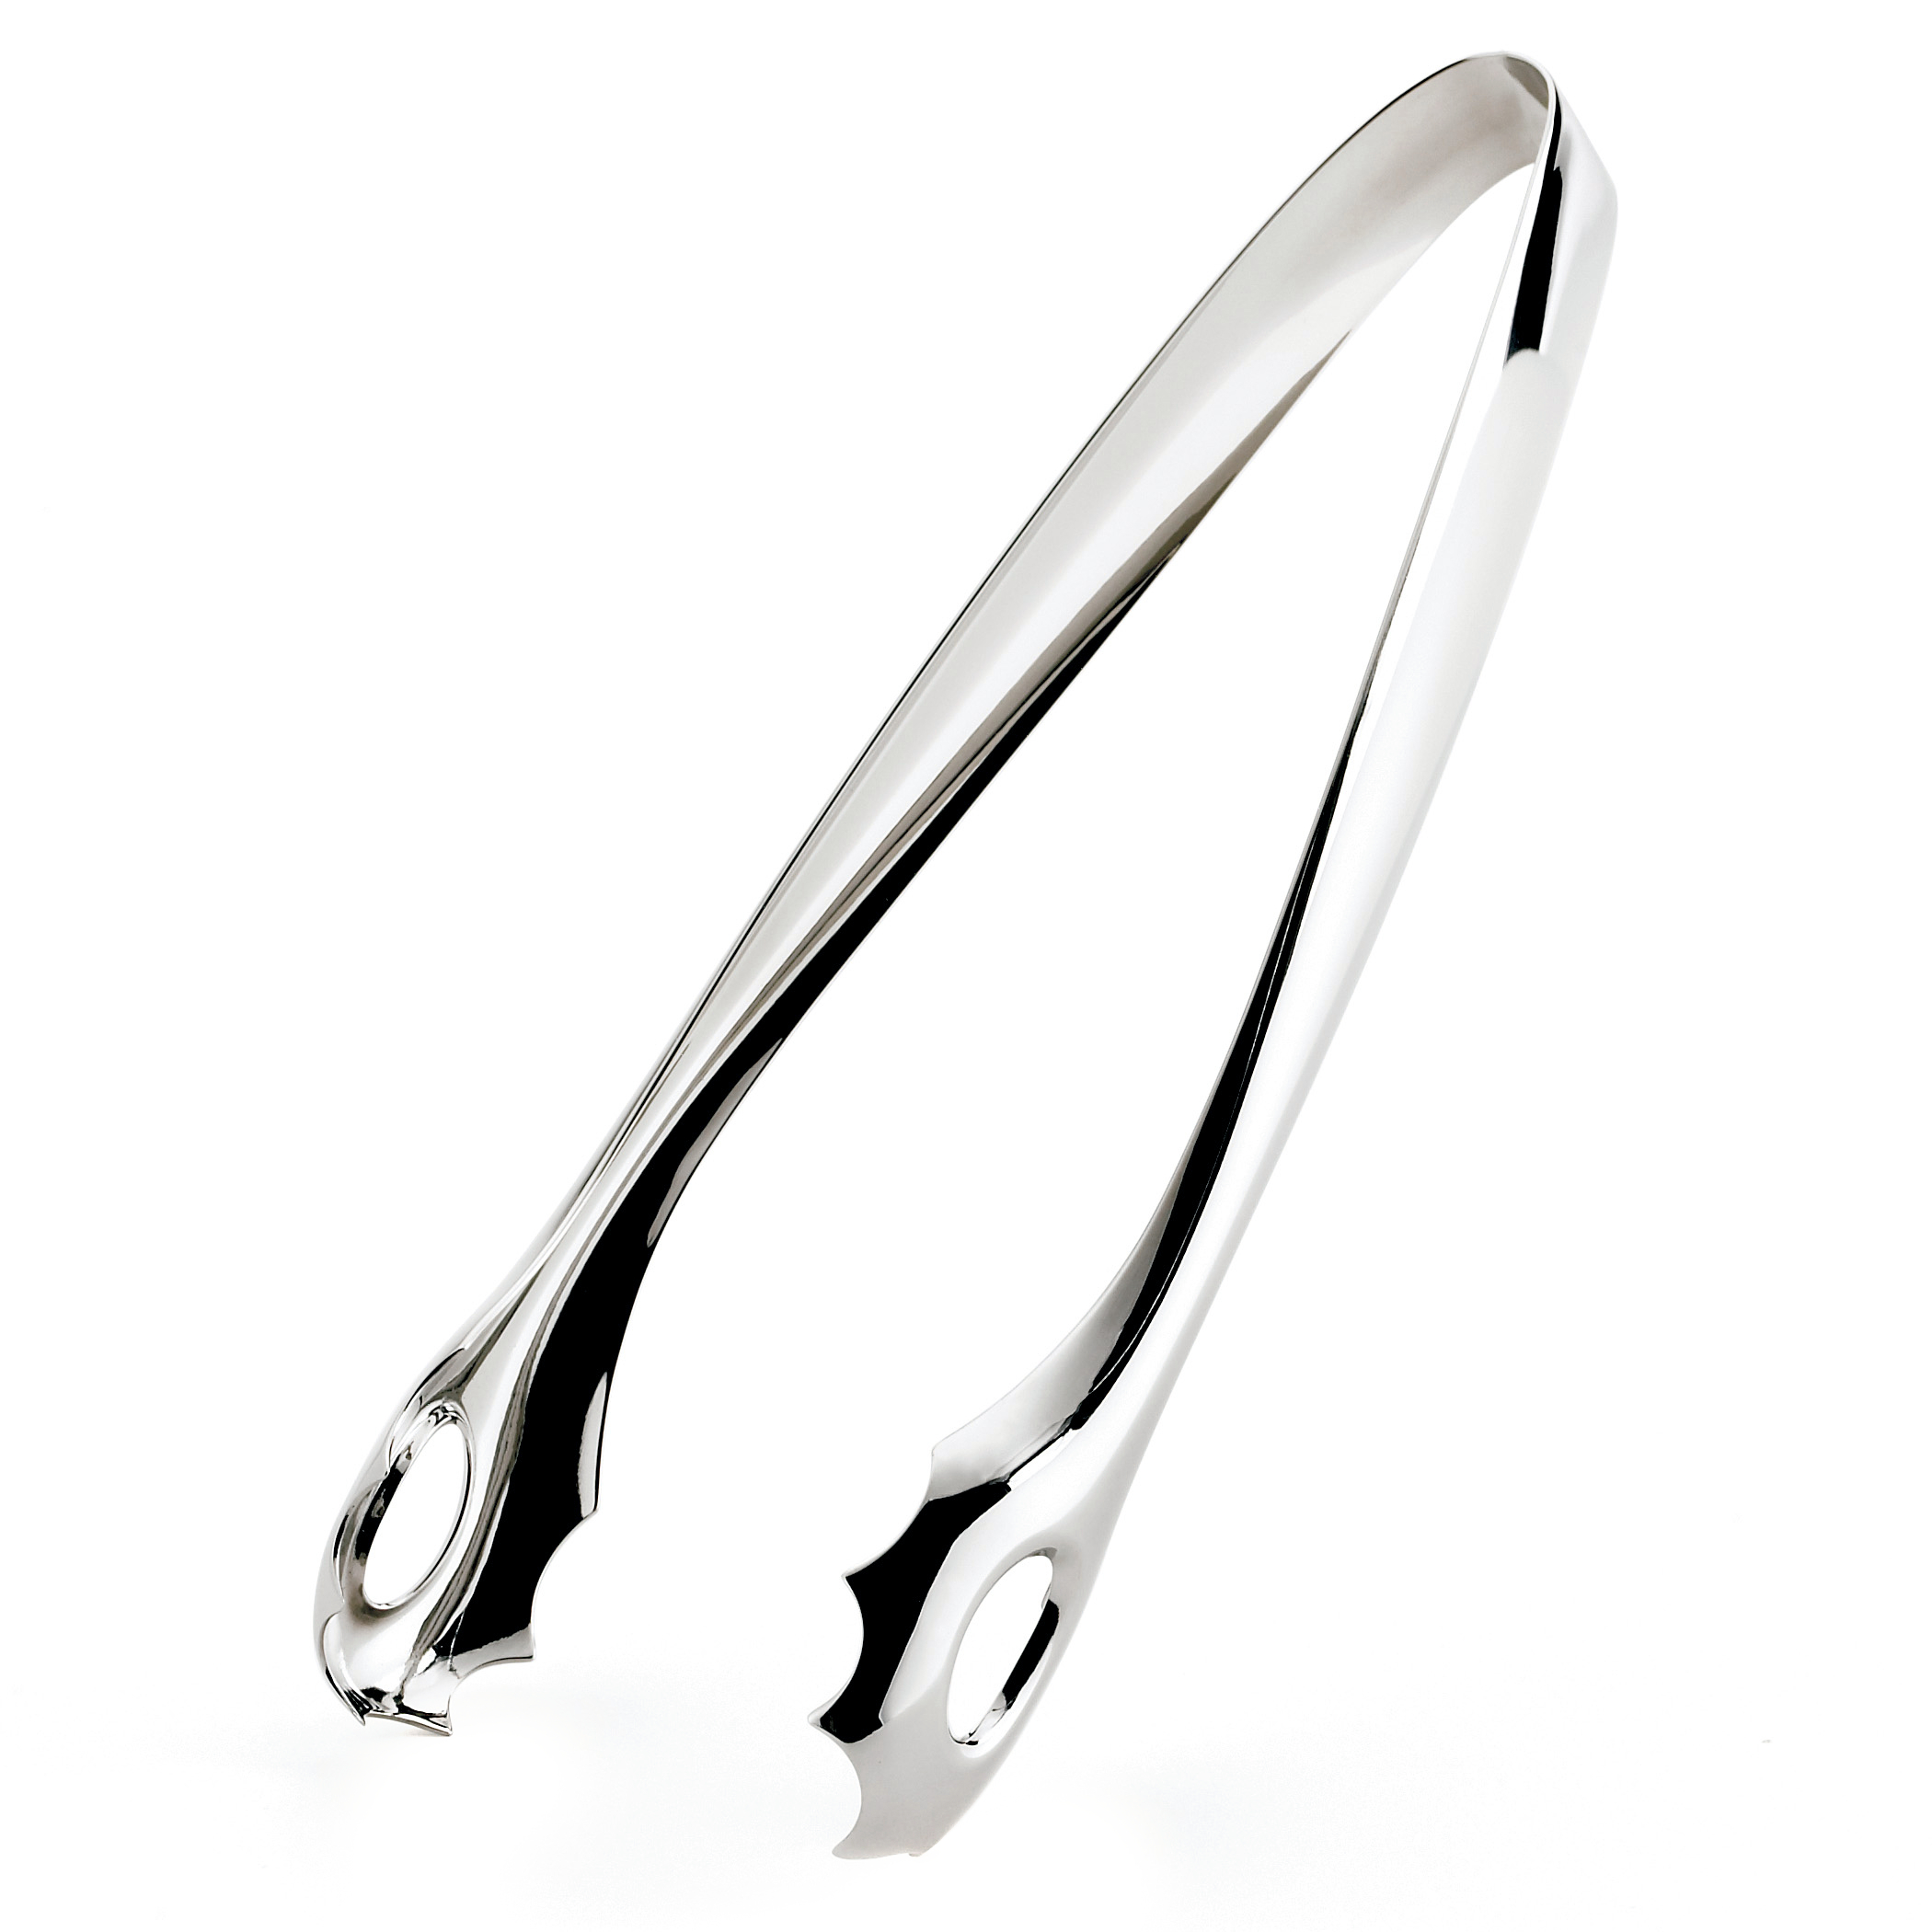 Cuisipro Stainless Steel 7 Inch Ice Tongs by Cuisipro